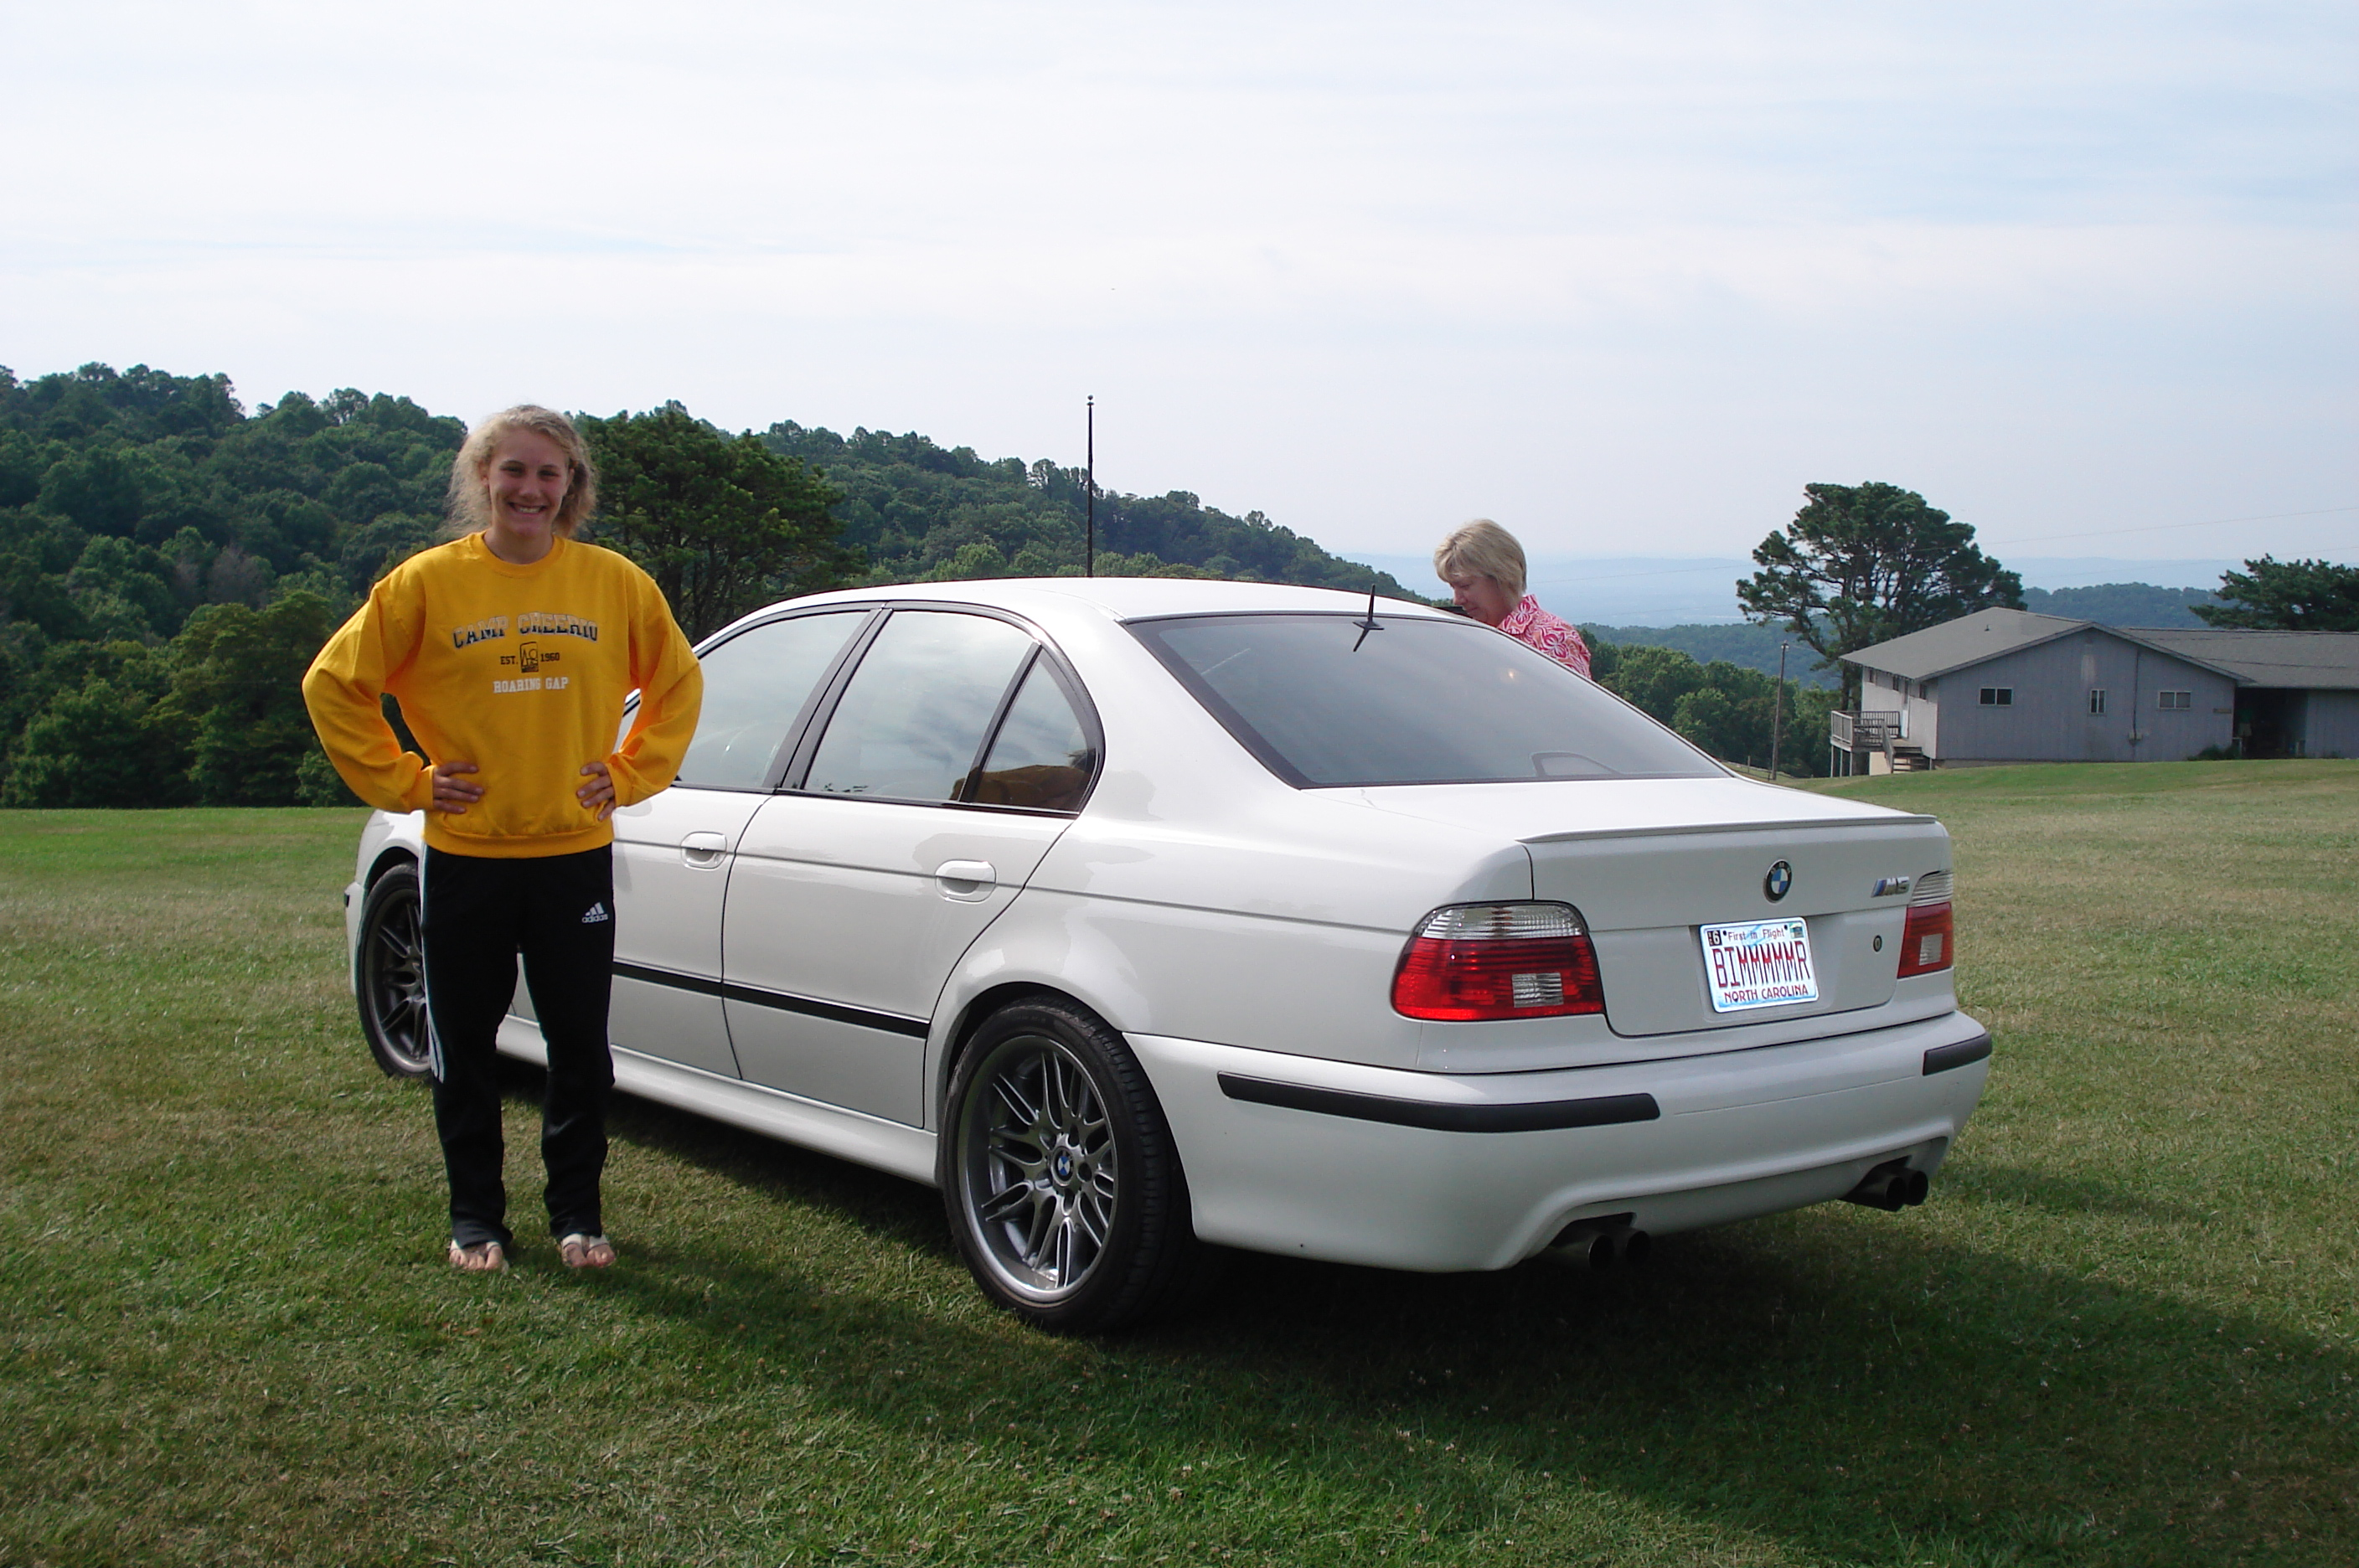 Pictures of You and your M5-mary-m5-2.jpg